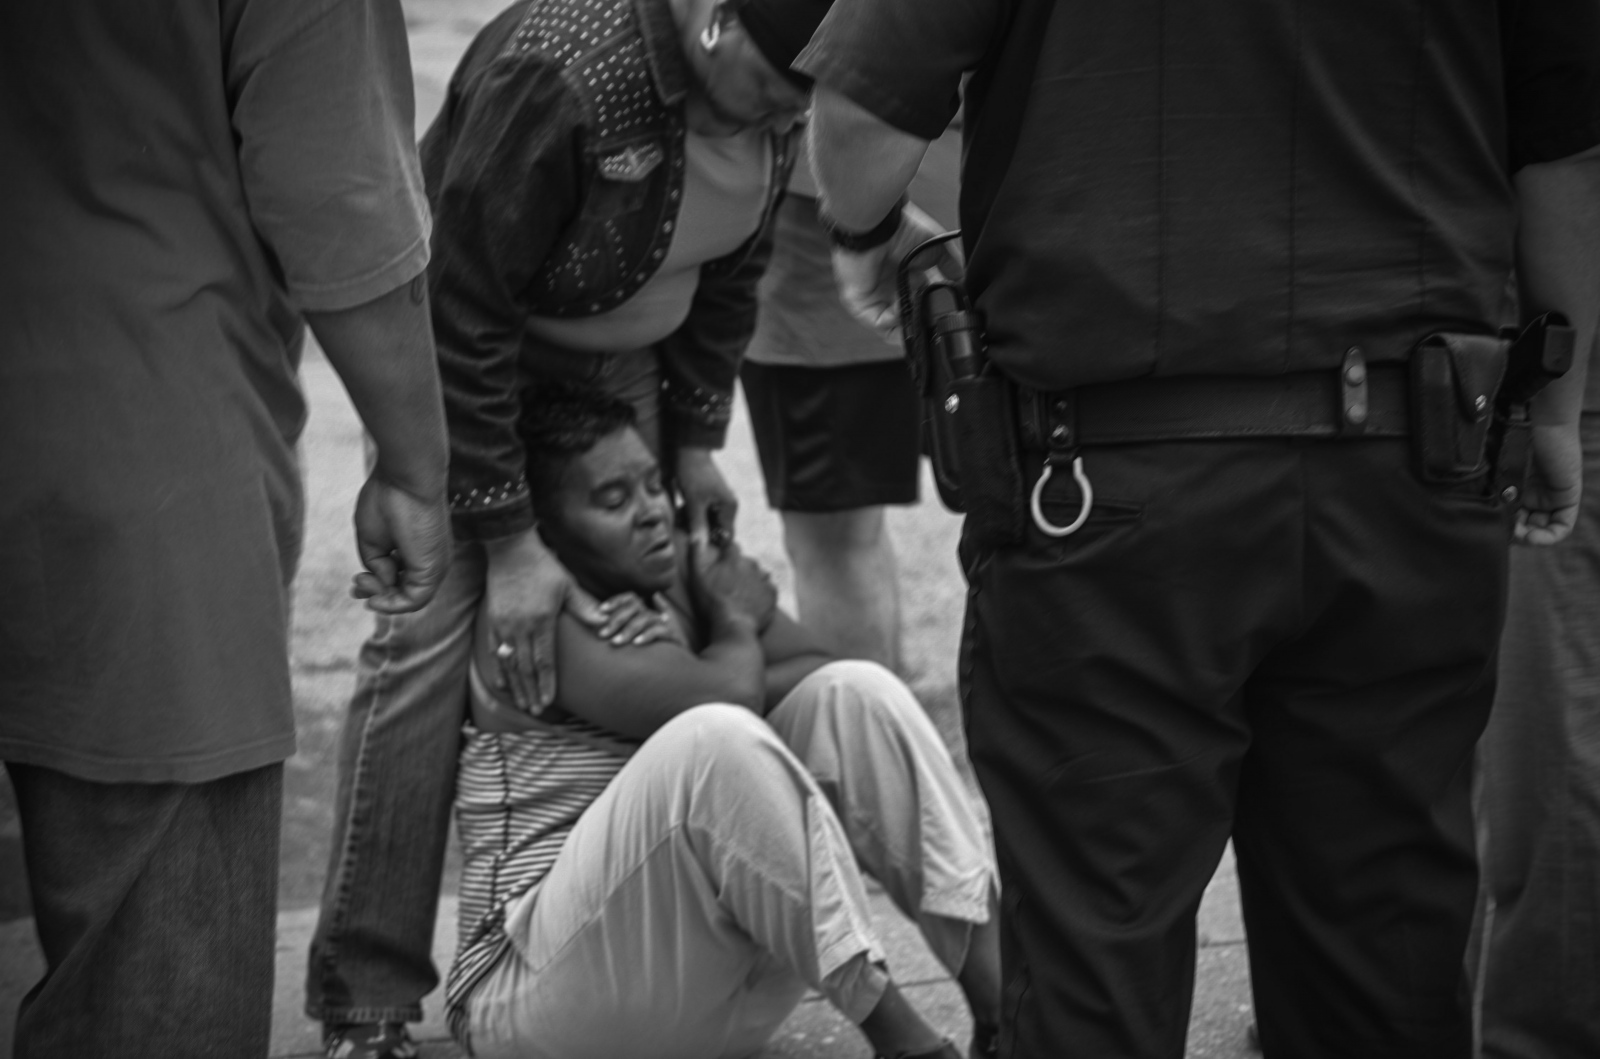 A woman drops to the ground on hearing that a man shot was not her son, who shared the same first name of the victim killed in the 3900 block of Hanover St. August 6, 2013.